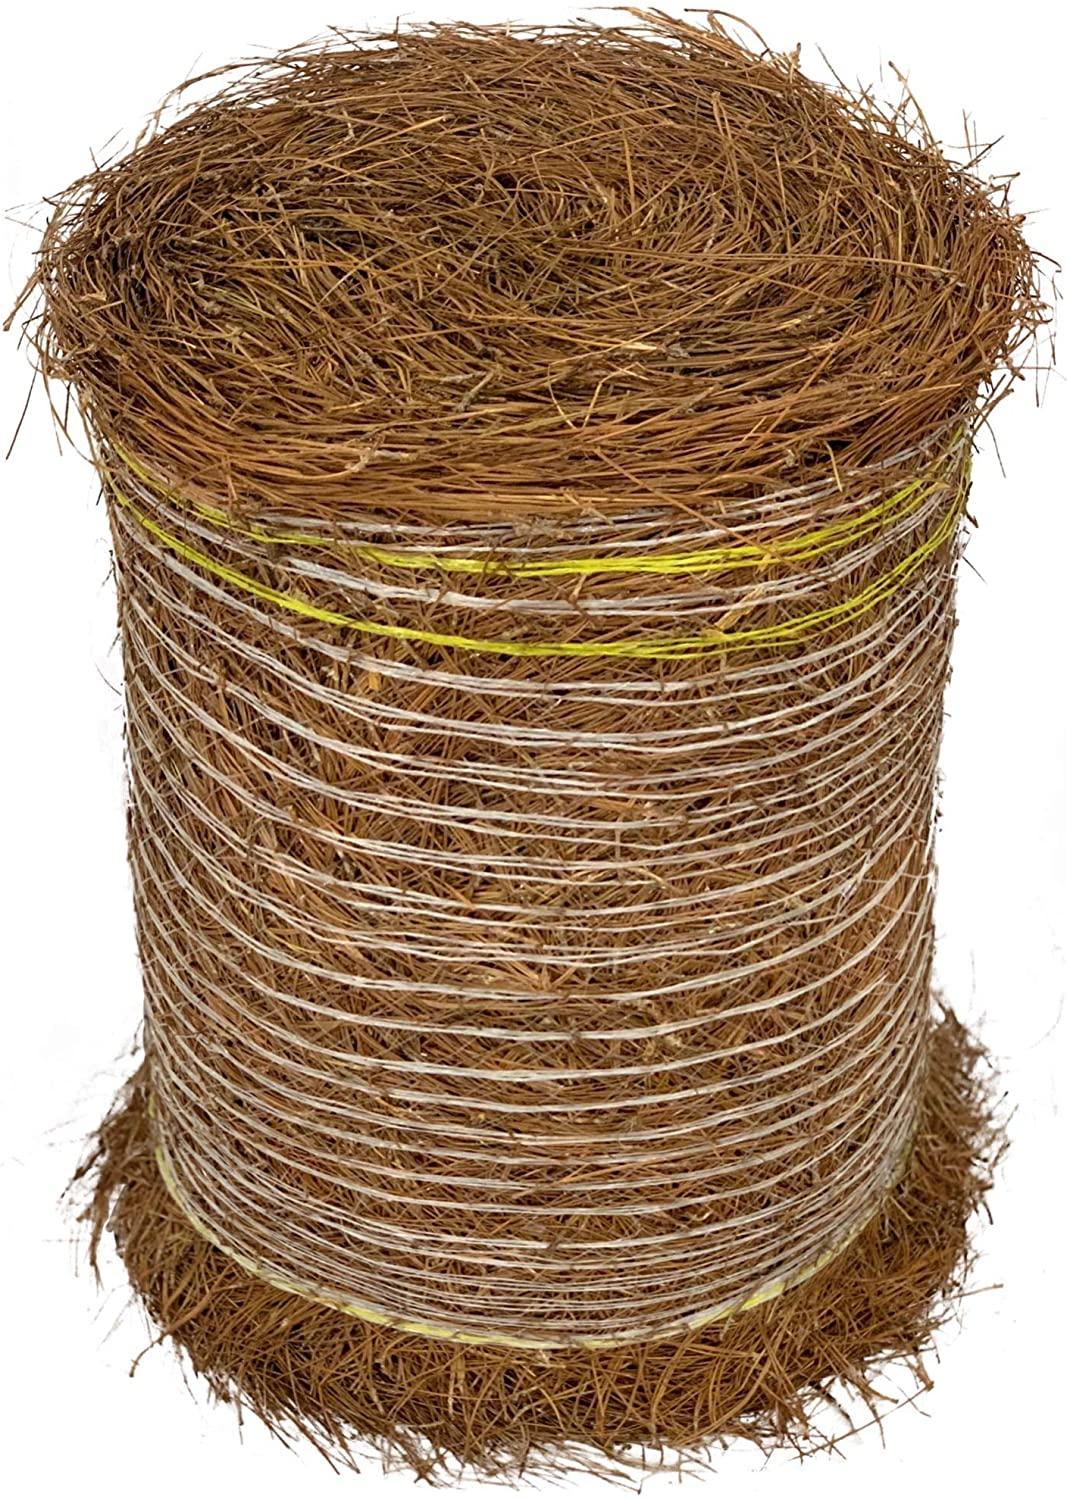 Longleaf Pine Straw Roll for Landscaping - Non-Colored - Covers Up to 125 Square Feet